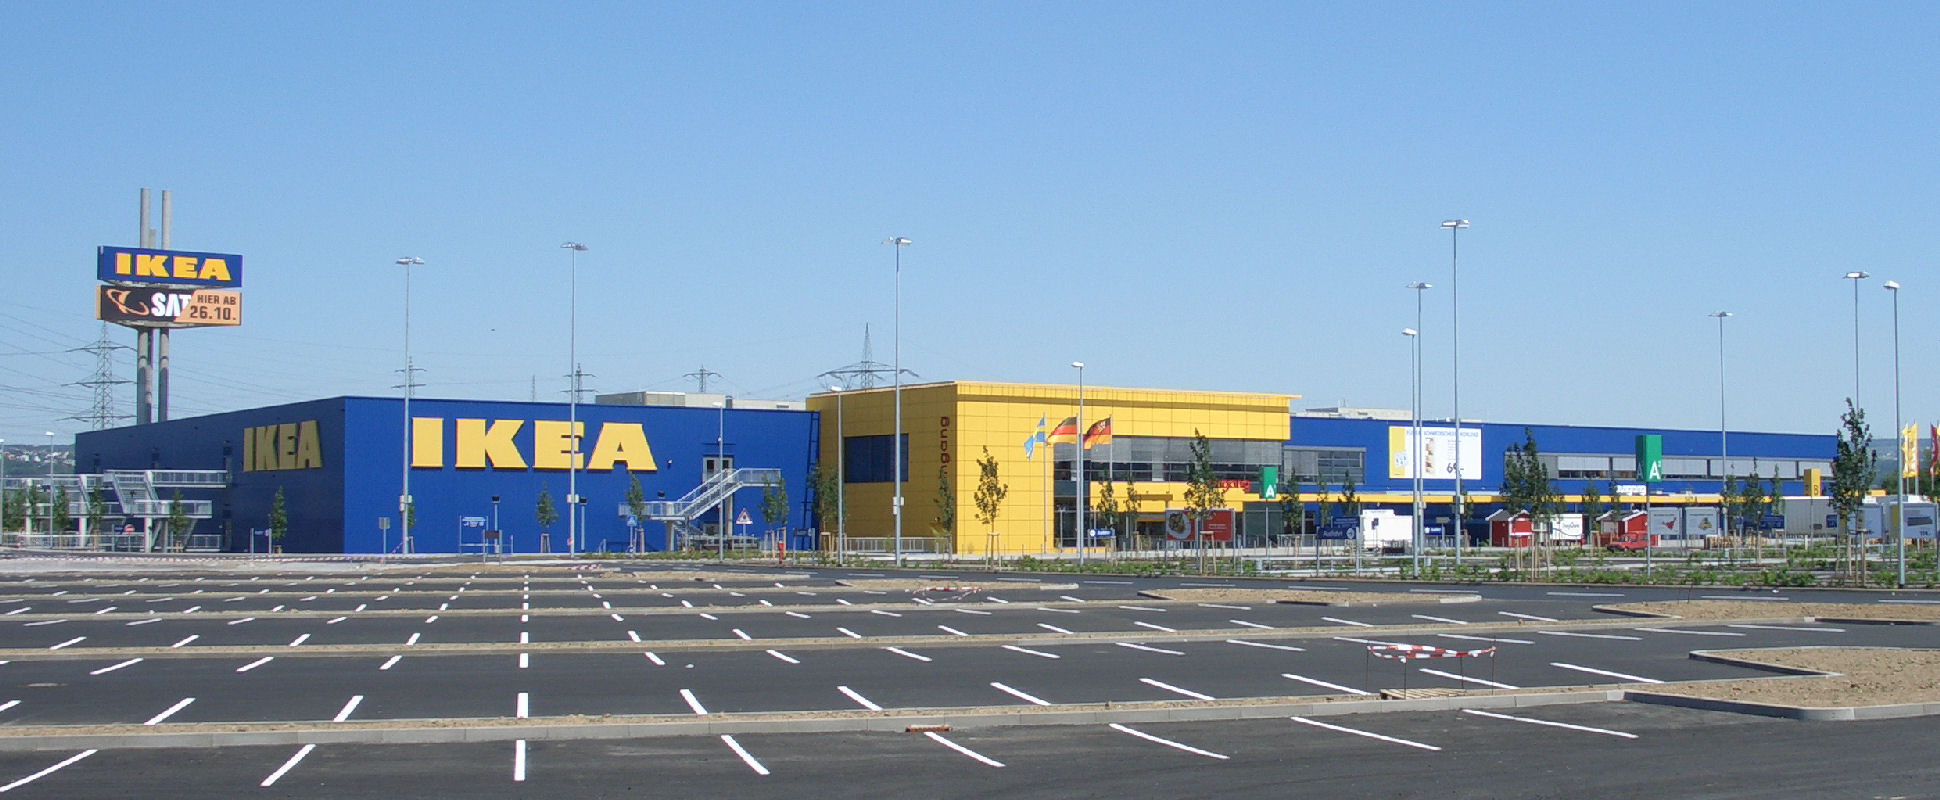 Ikea Meuble Bas Luxembourg Shopping - Voyages Remi